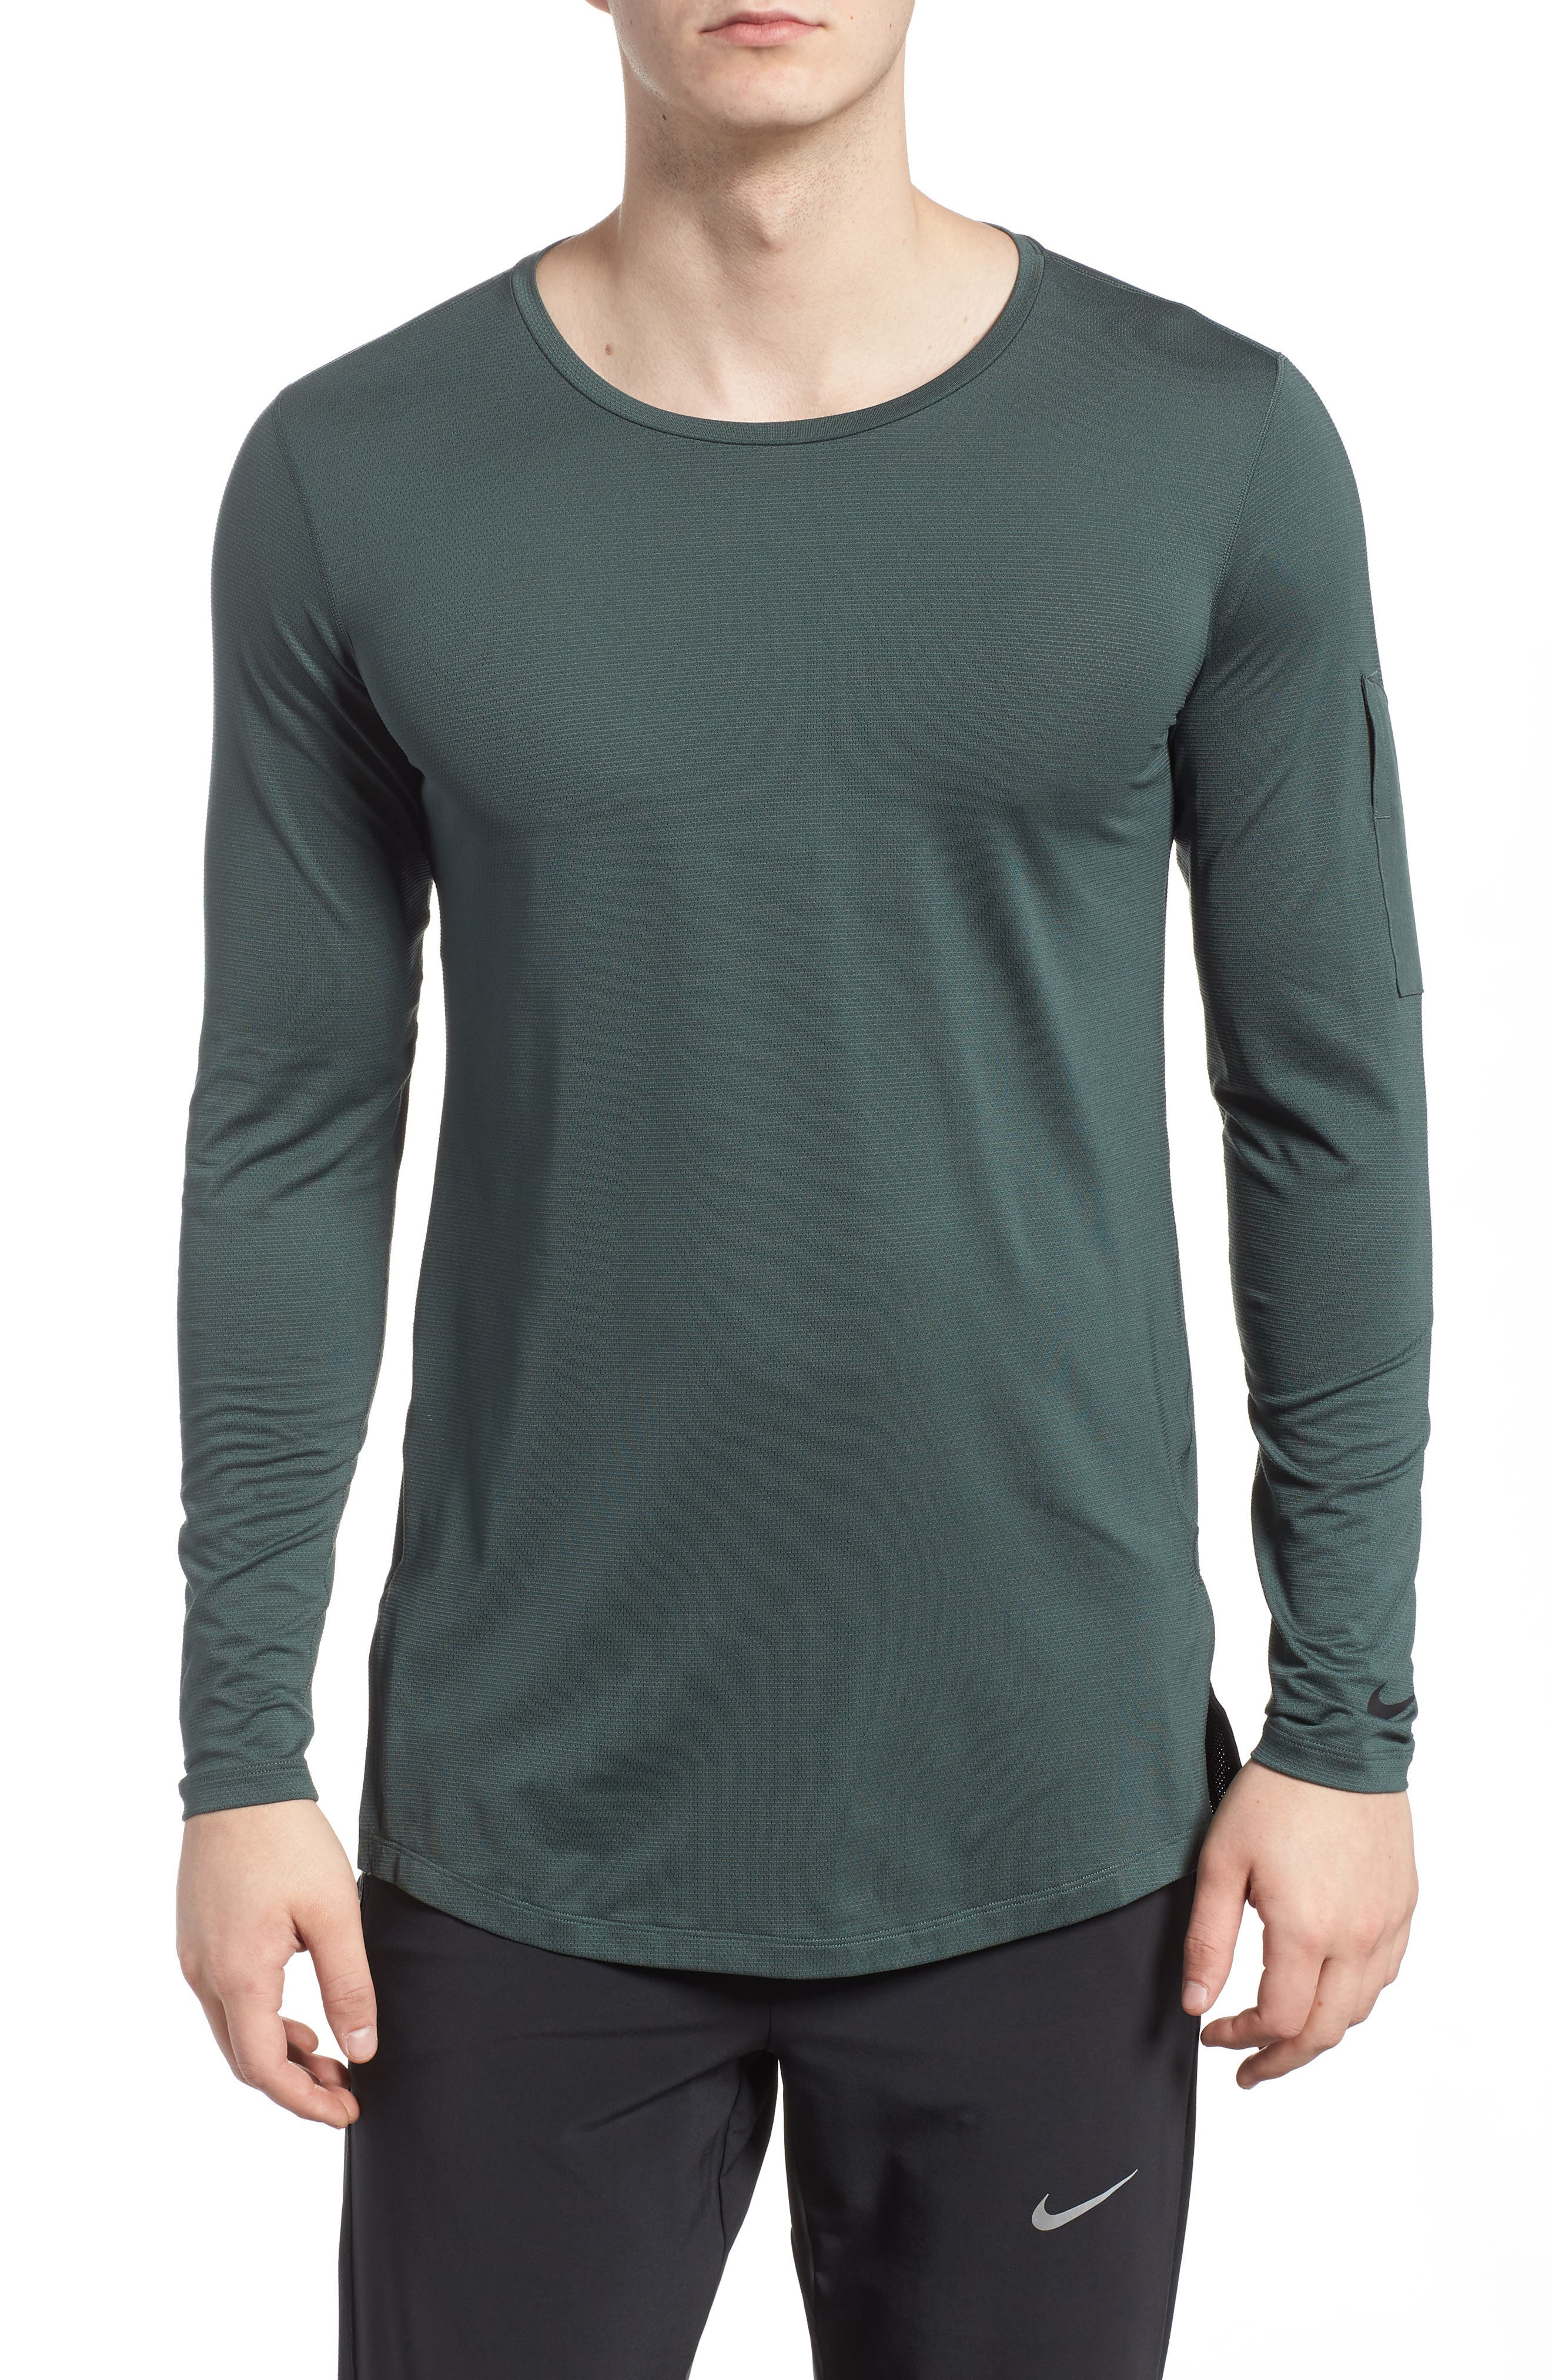 Pro Utility Fitted Training Top,                         Main,                         color, Vintage Green/ Black